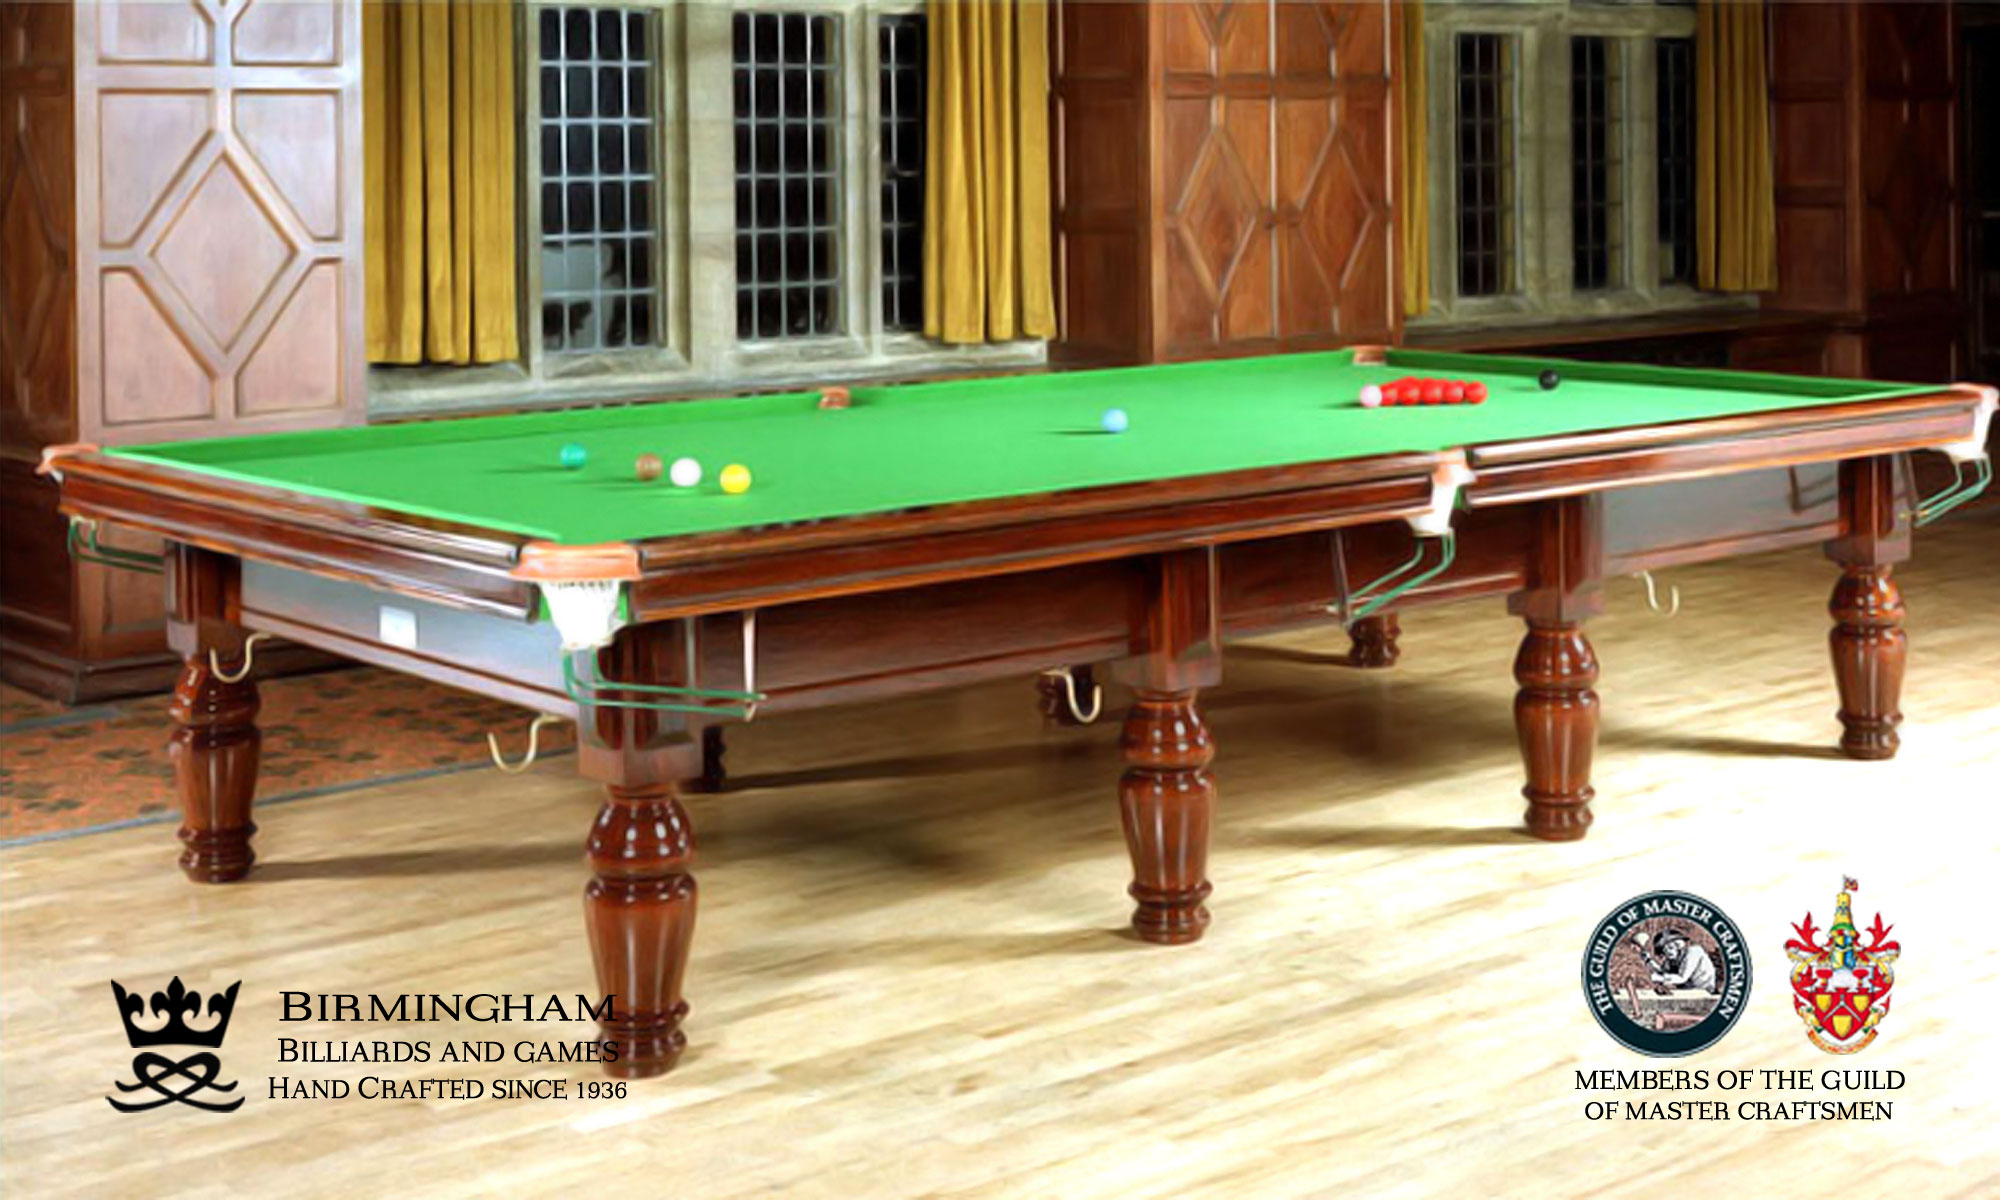 Timeless Classic Dining Tables Birmingham Billiards - Regent pool table